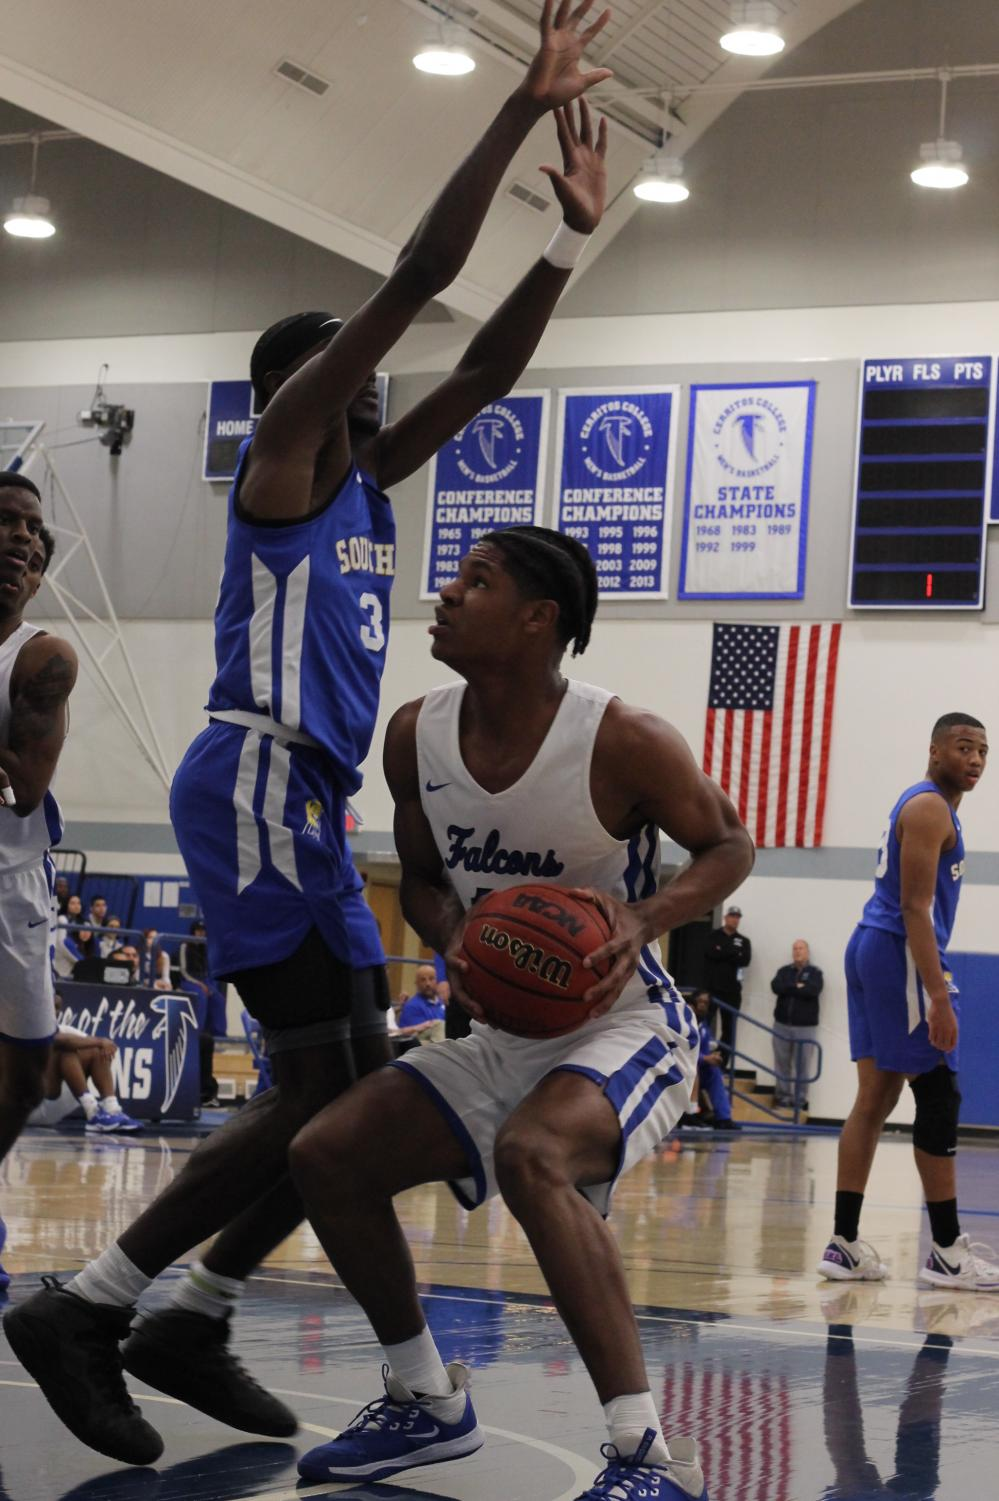 Jaishon Forte, forward No.11, prepares to take a shot against LA Southwest. The Falcons beat the Cougars on February 5, 2020. Photo credit: Derrick Coleman